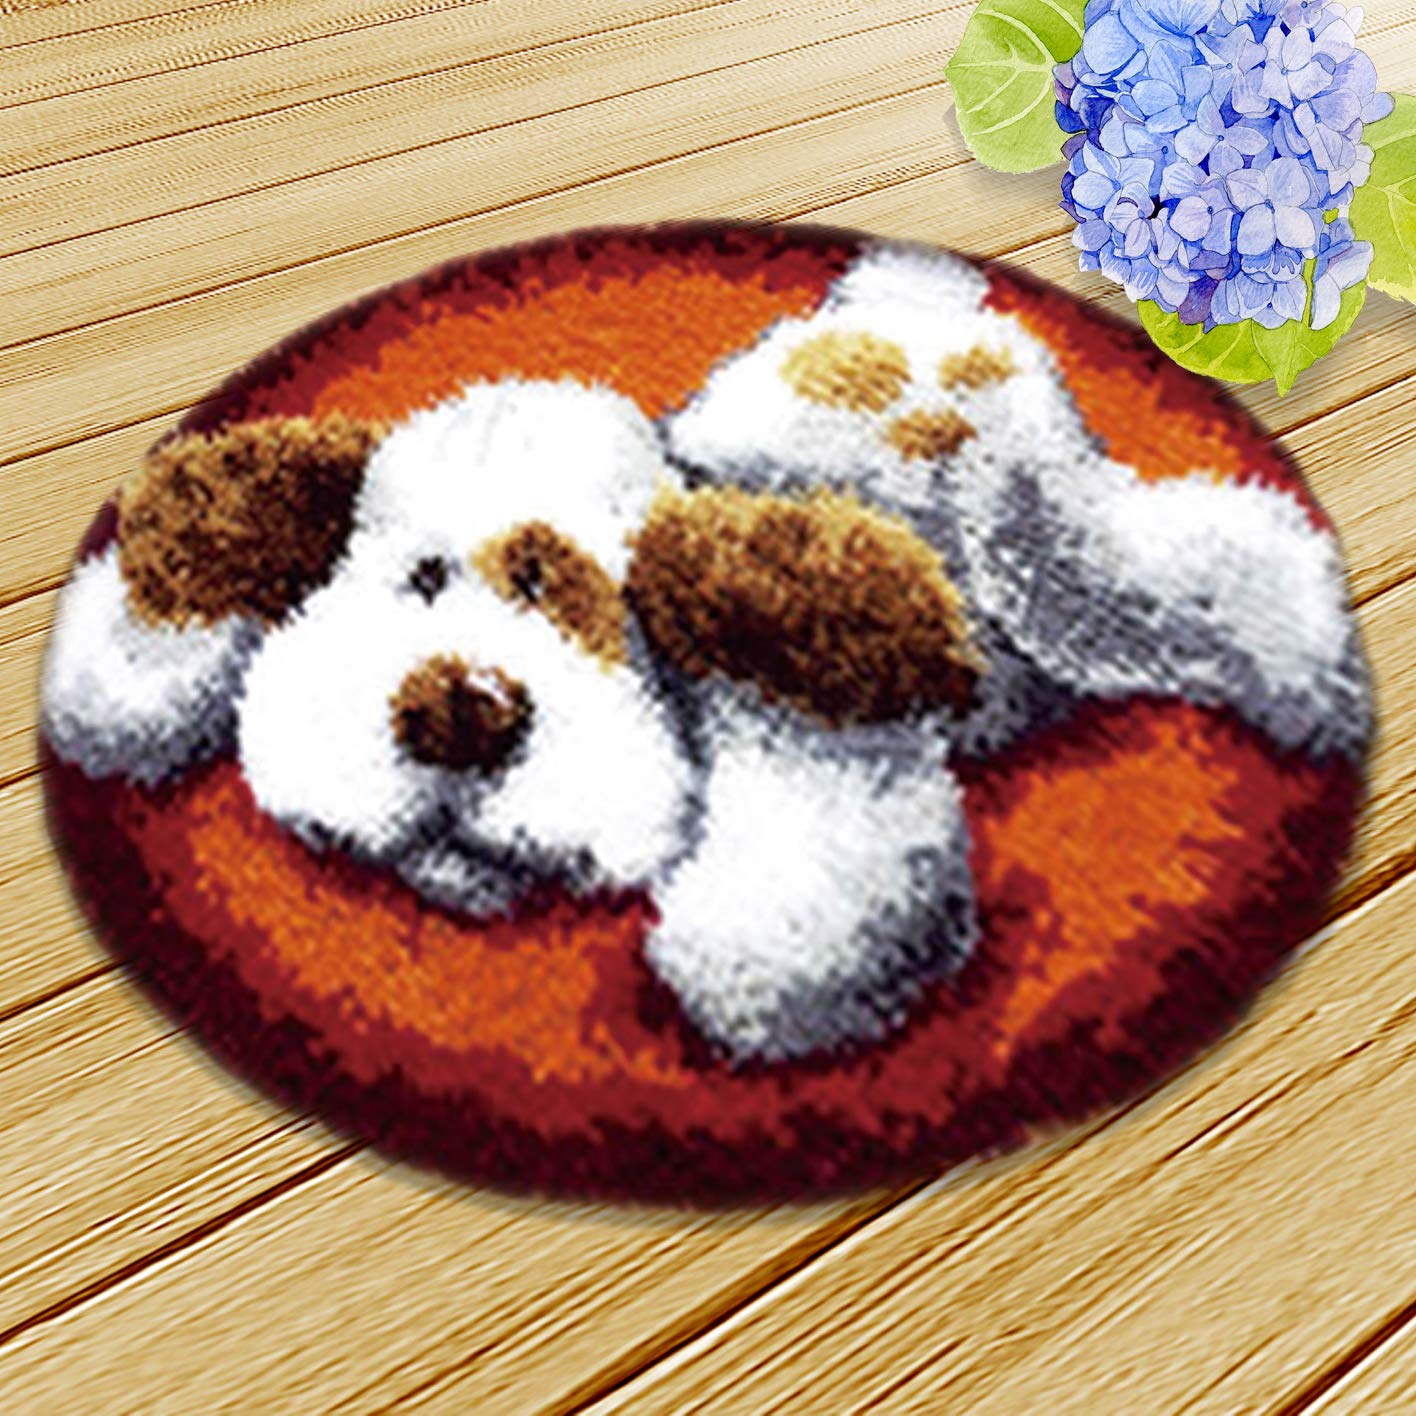 Thunder Bluff Animal Latch Hook Kit Rug Carpet Mat 20 by 20 inch, Beginners can Also Easily Complete Handmade Crafts. (8) Le Zhi